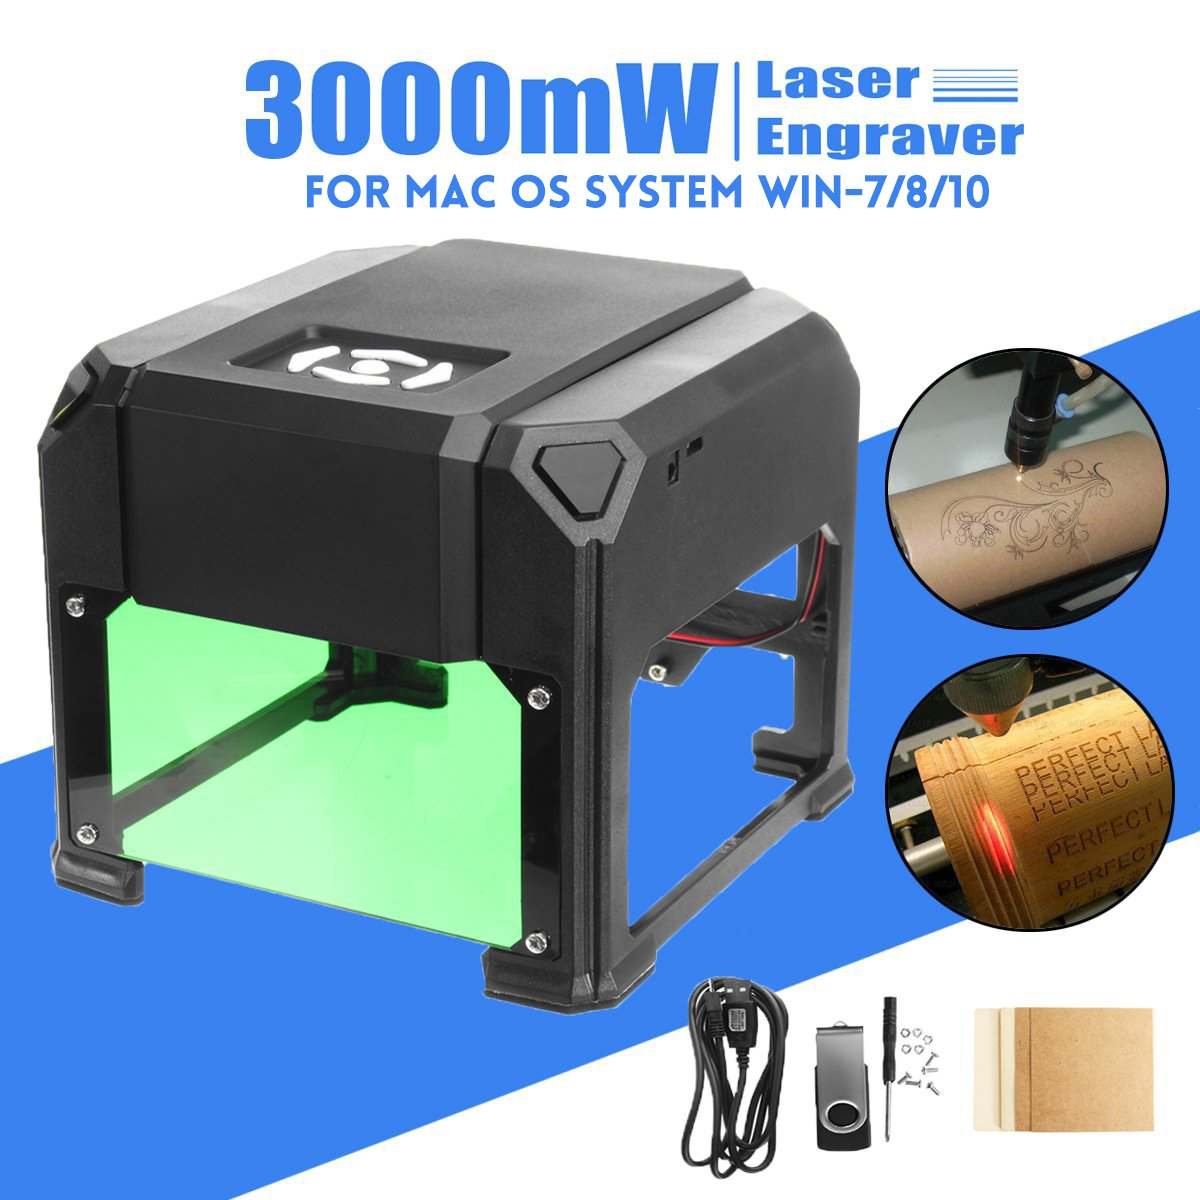 2000 Mw/3000 Mw Usb Desktop Laser Graveur Machine 80X80 Mm Graveren Bereik Diy Logo Mark Printer cutter Cnc Laser Carving Machine - 6